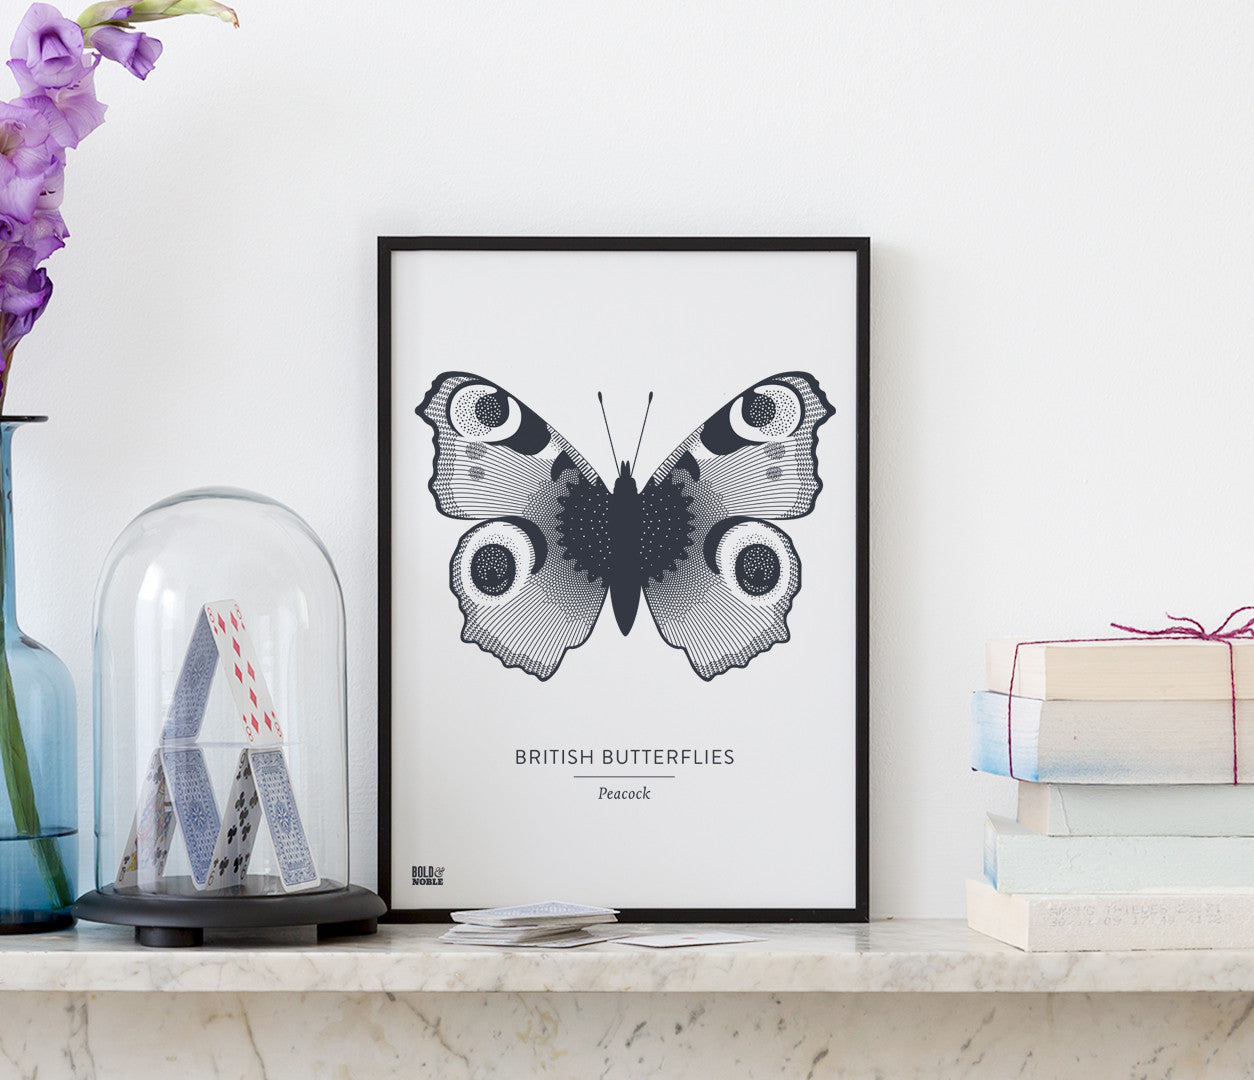 Butterflies Art Print in Slate Dark Grey, Modern Print Designs for the Home